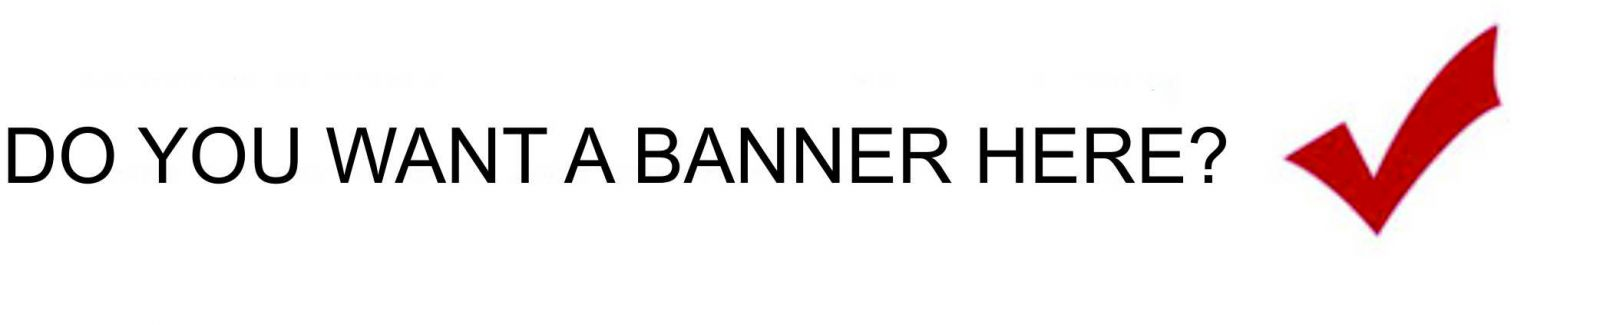 DO YOU WANT A BANNER HERE?